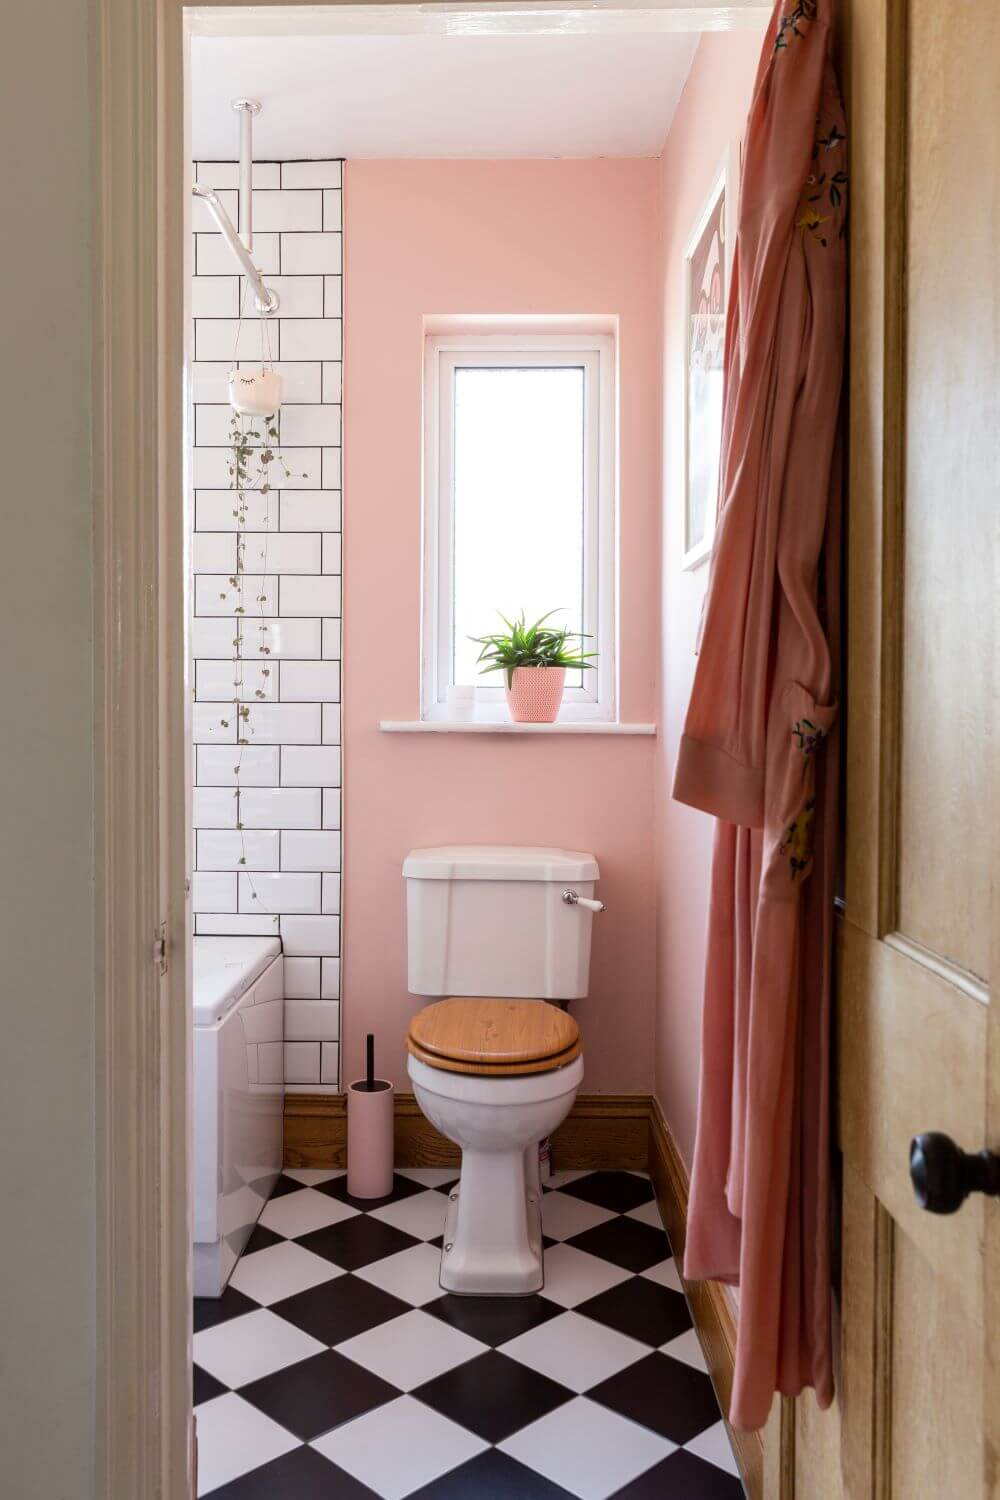 Decorate with Pink Home tour: Bathroom painted pink with black and white checked floor.